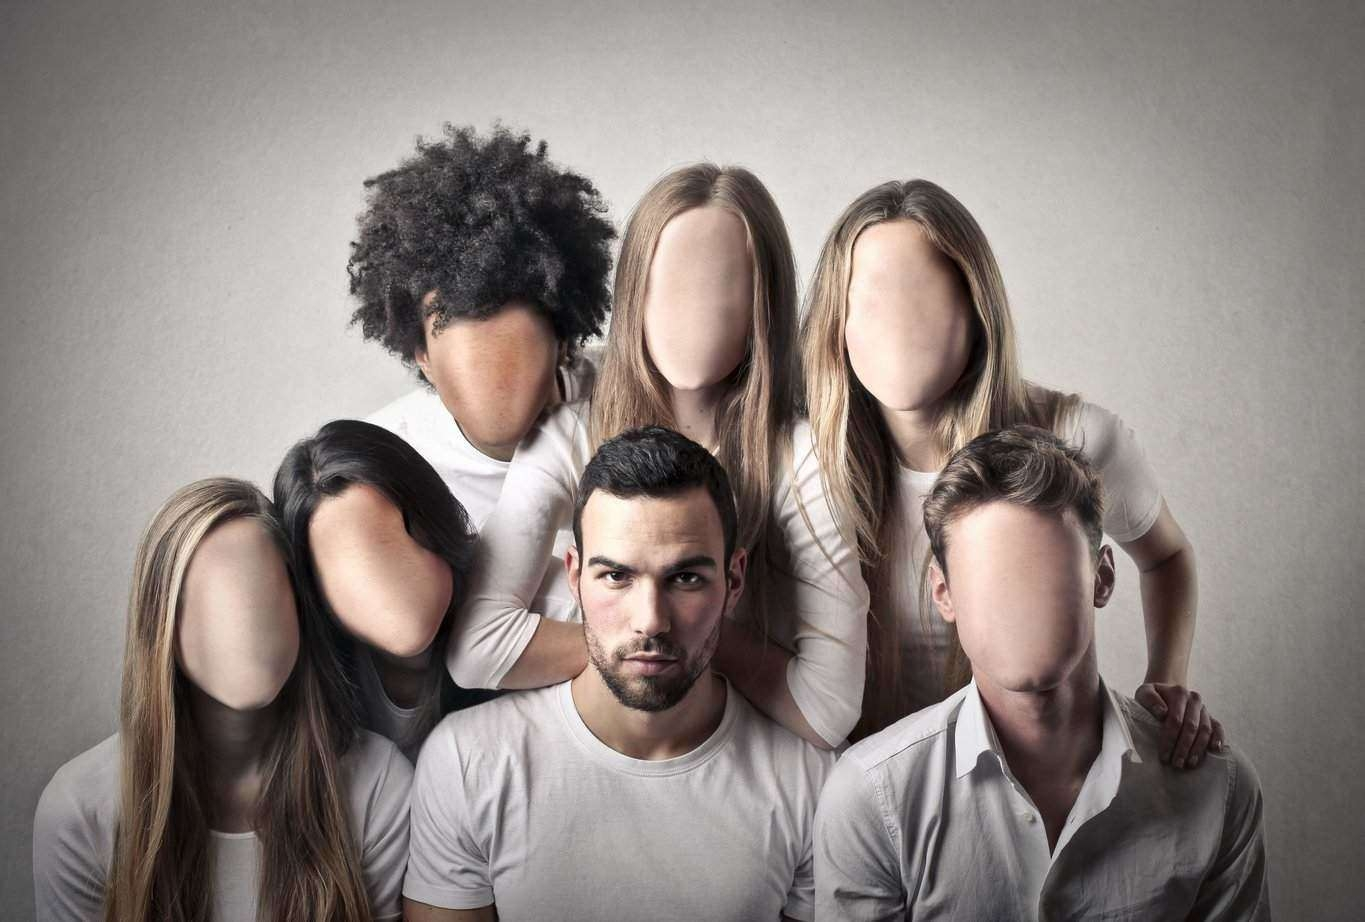 The Faceless People